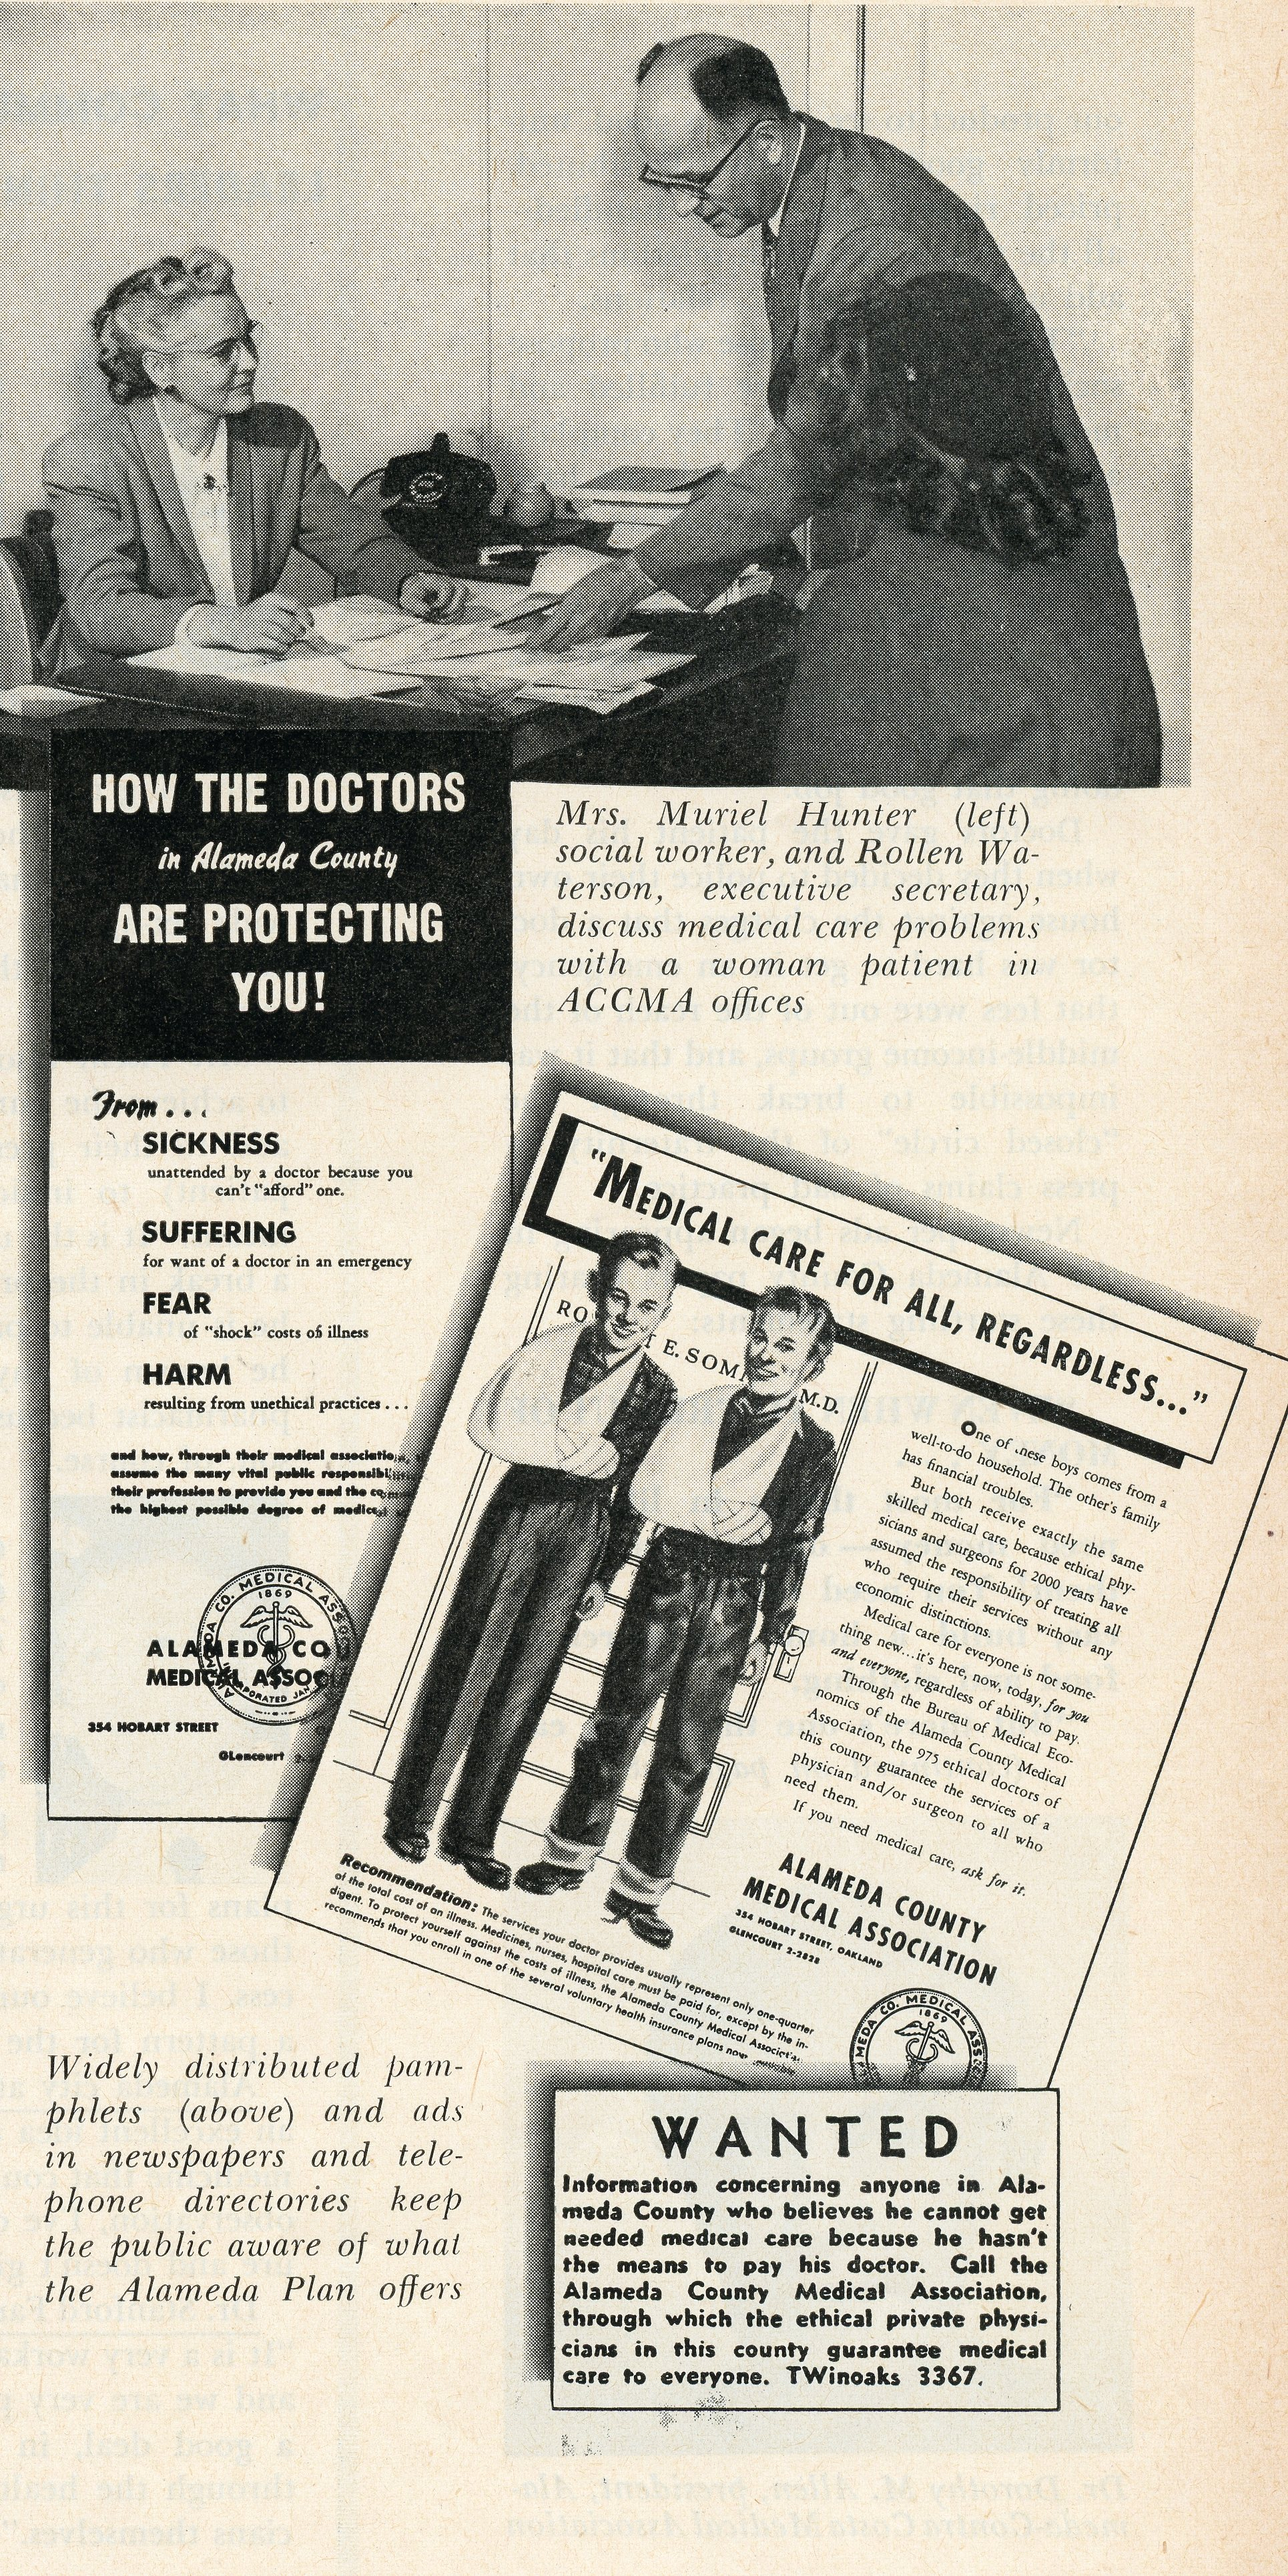 Medical Care for All, Regardless | Archives Talk